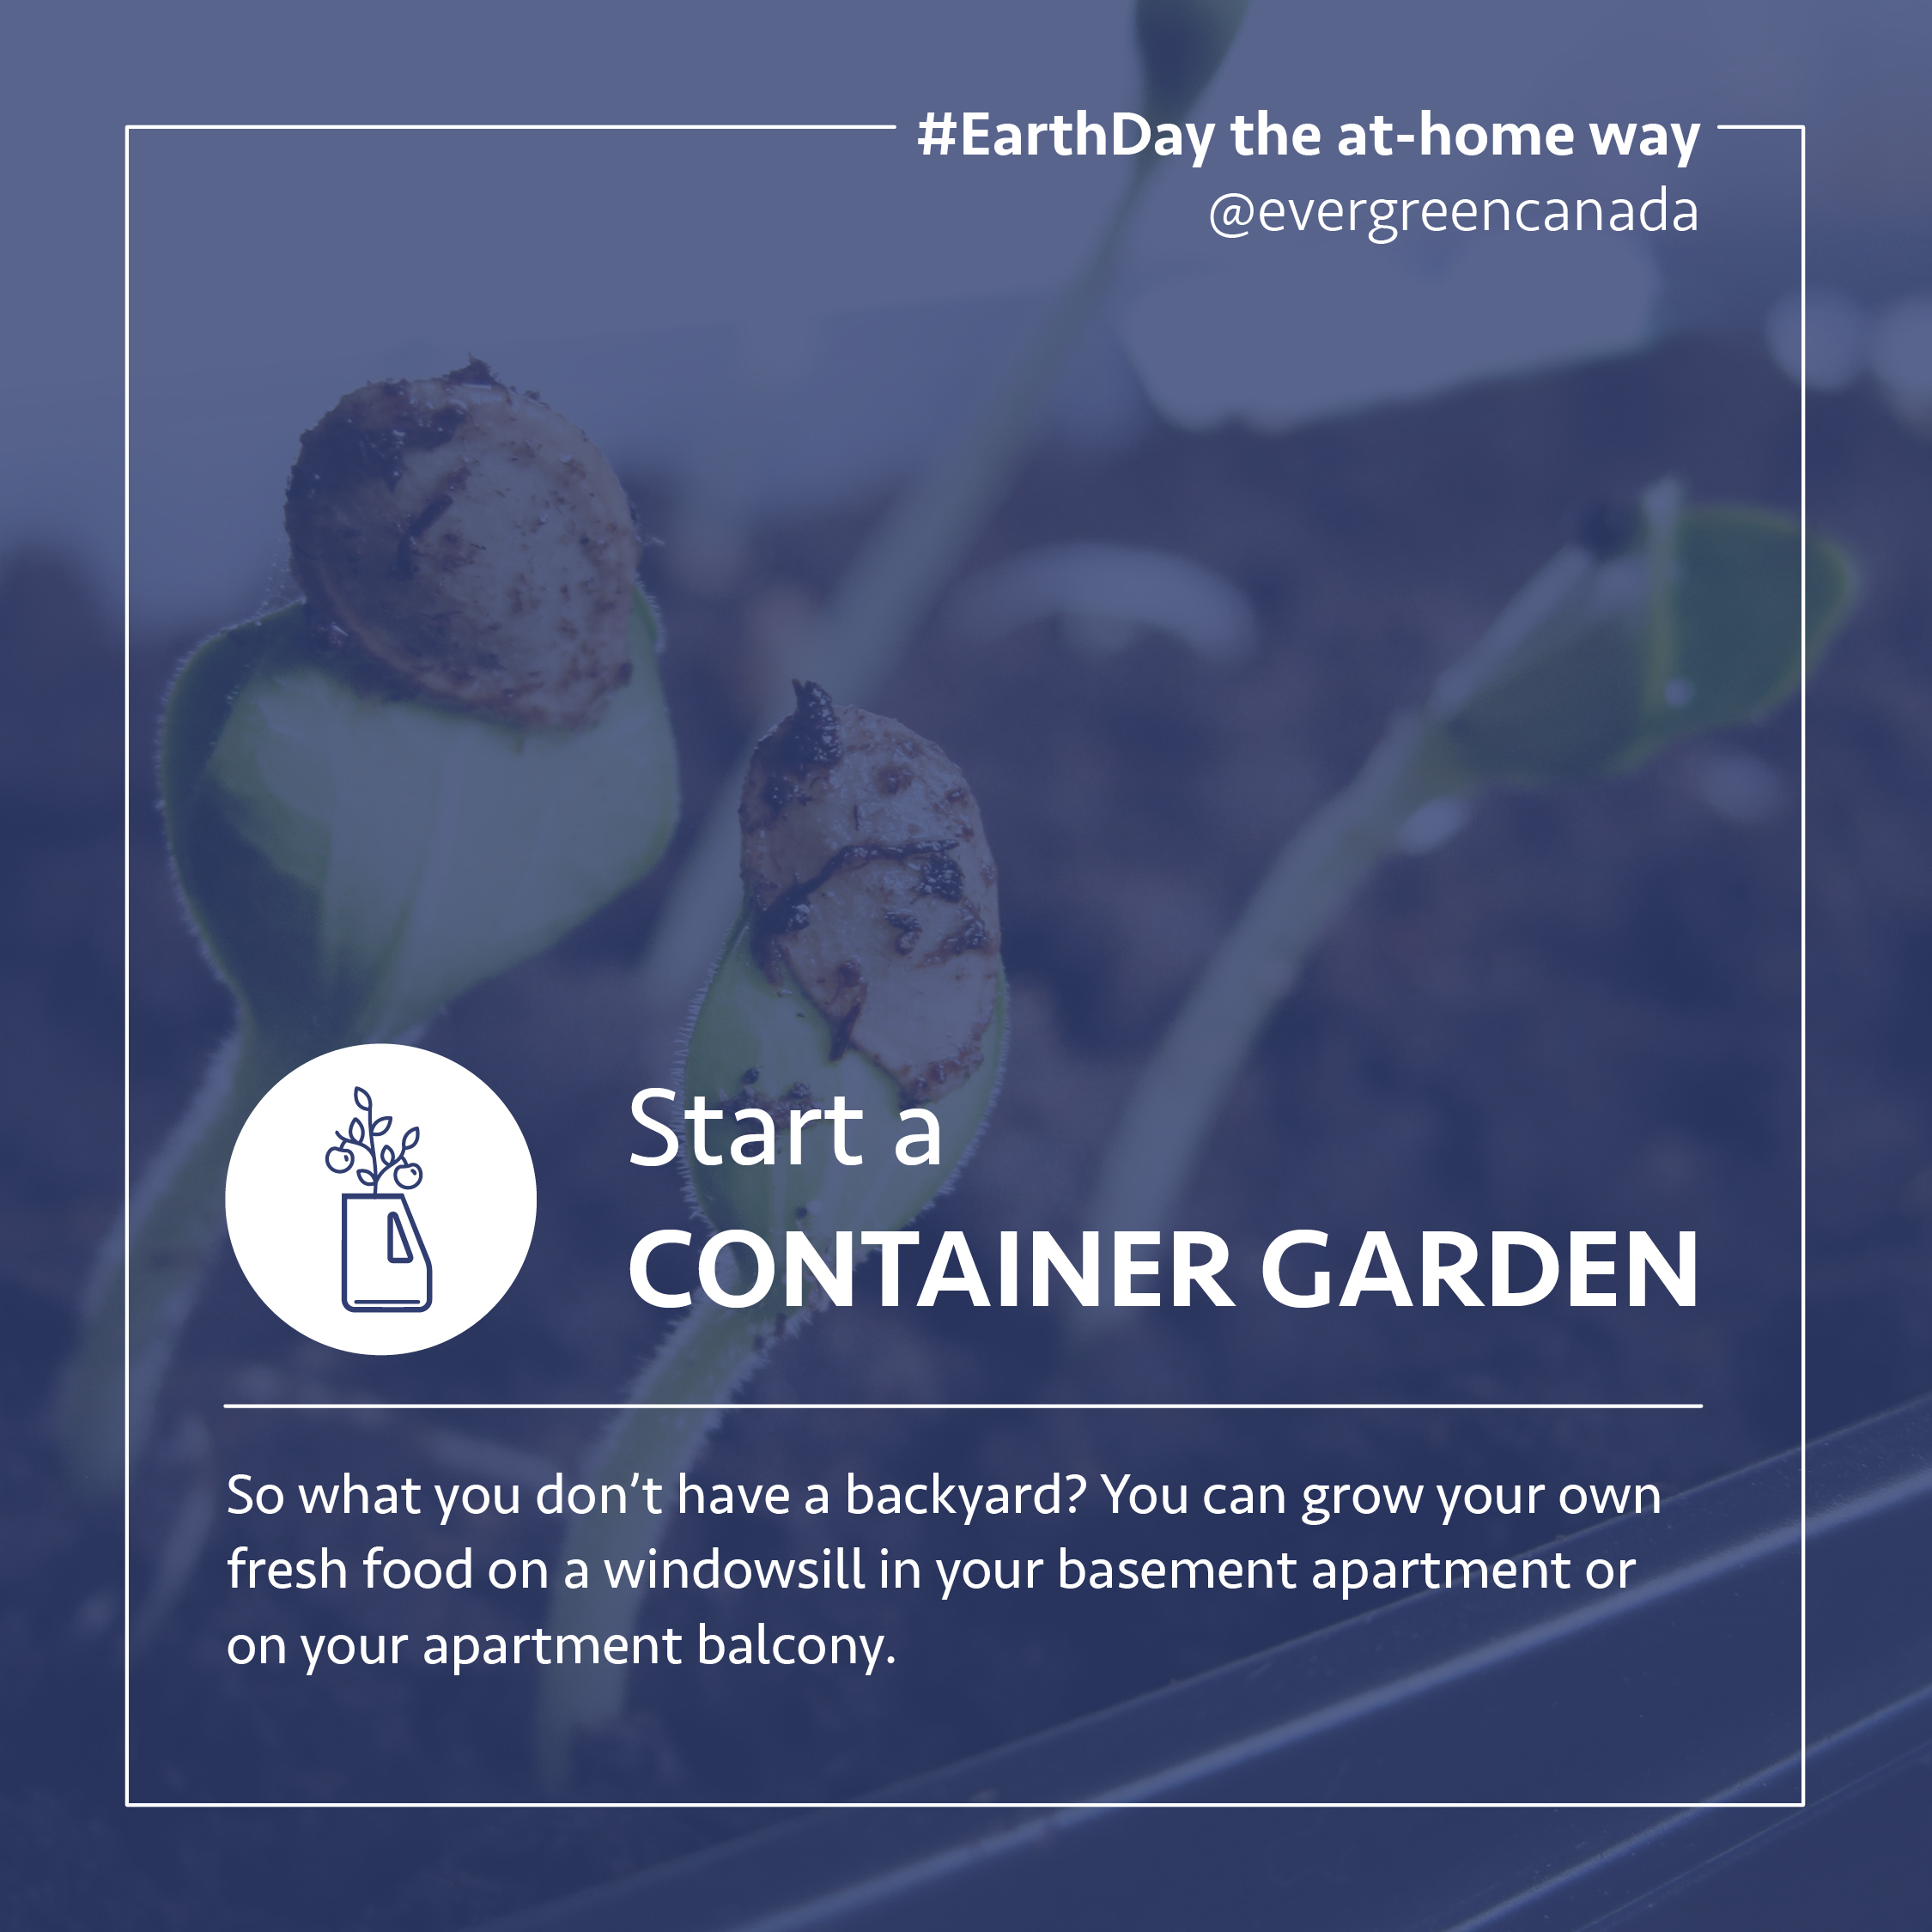 Start a container garden. So what you don't have a backyard? You can grow your own fresh food on a windowsill in your basement apartment or on your apartment balcony.